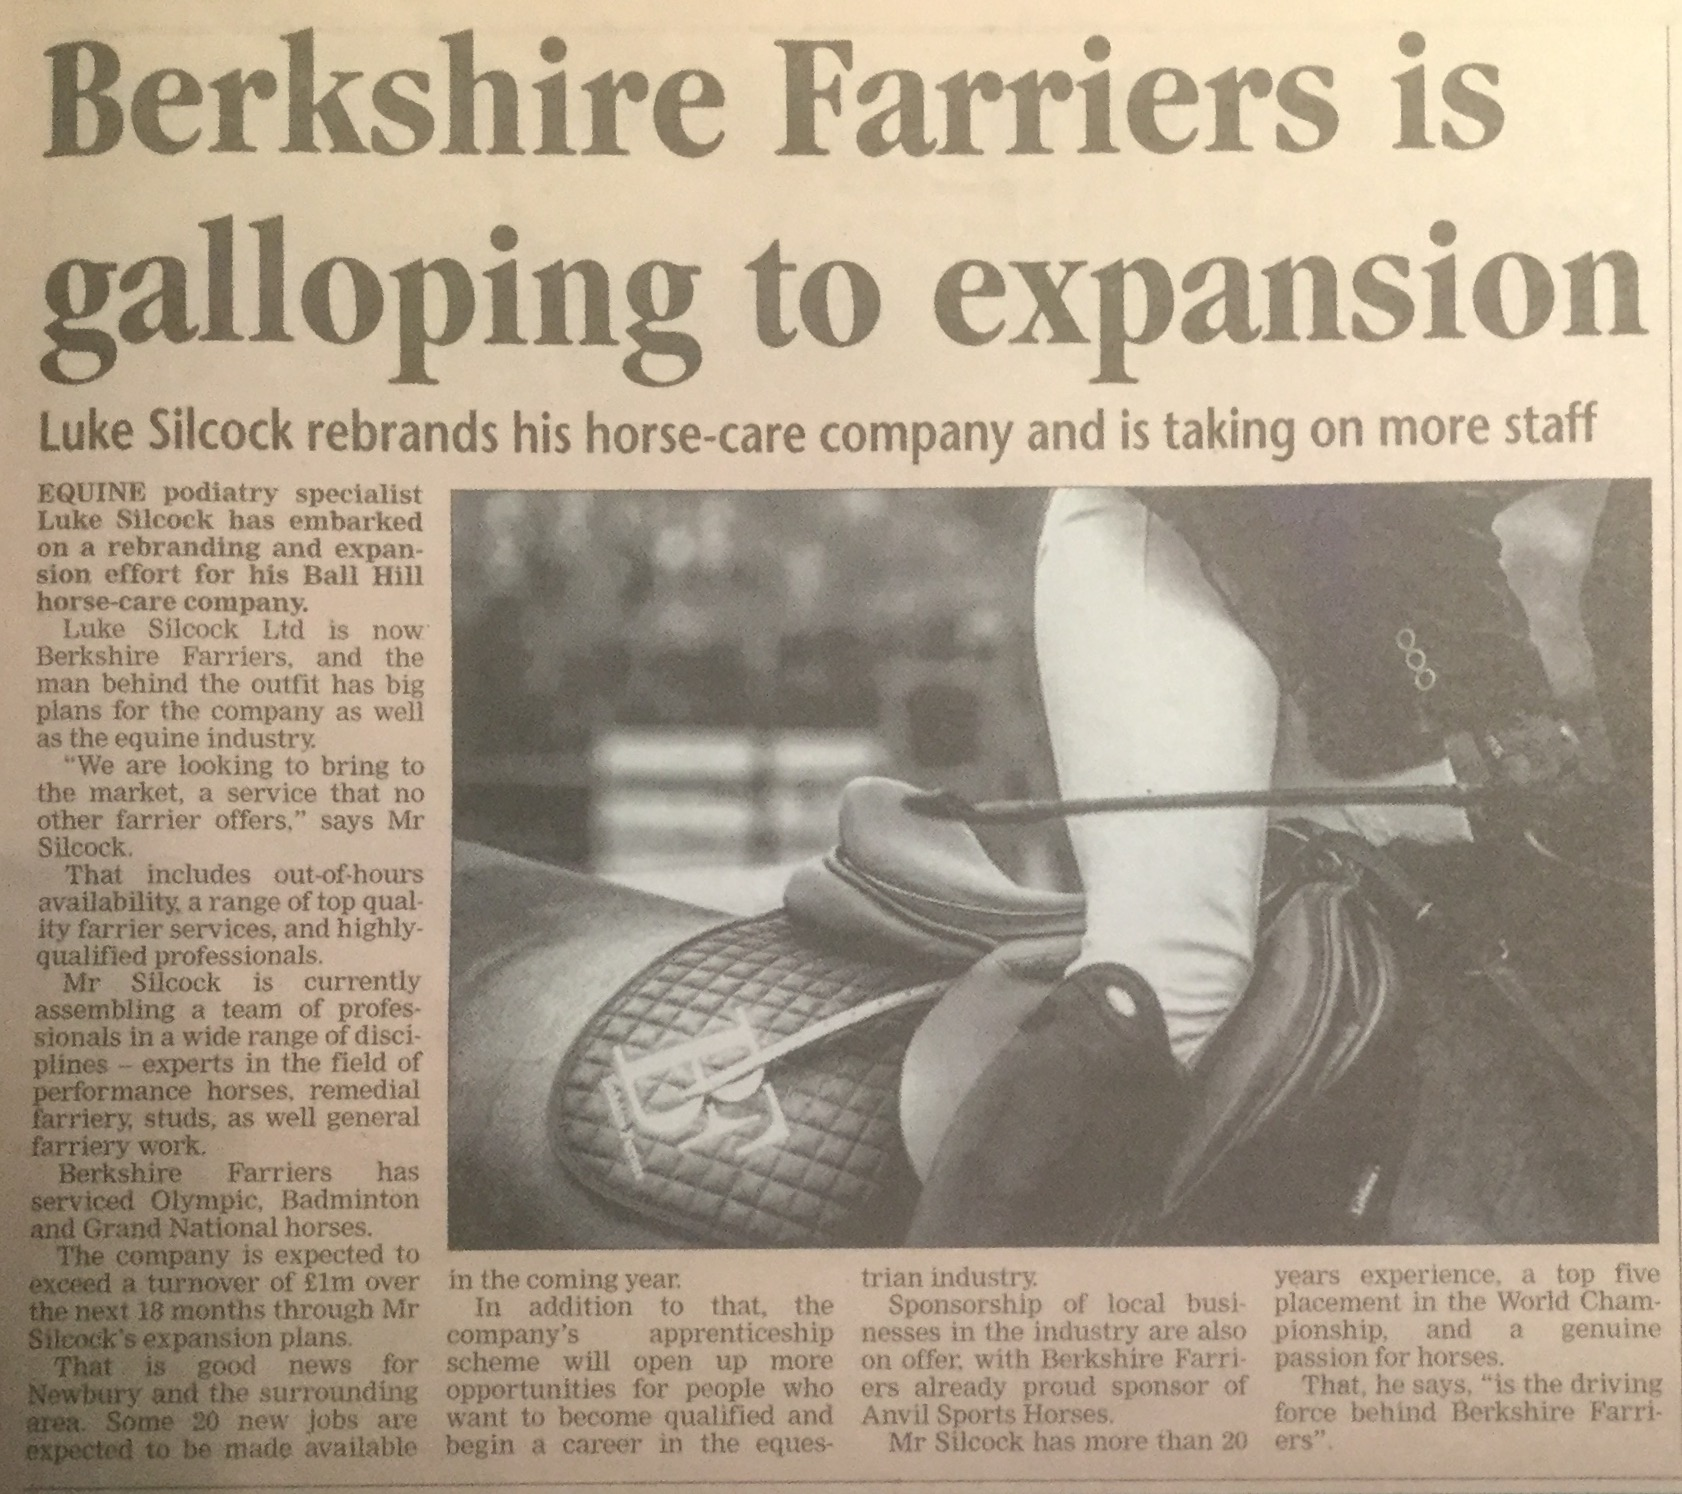 Berkshire Farriers is galloping to expansion